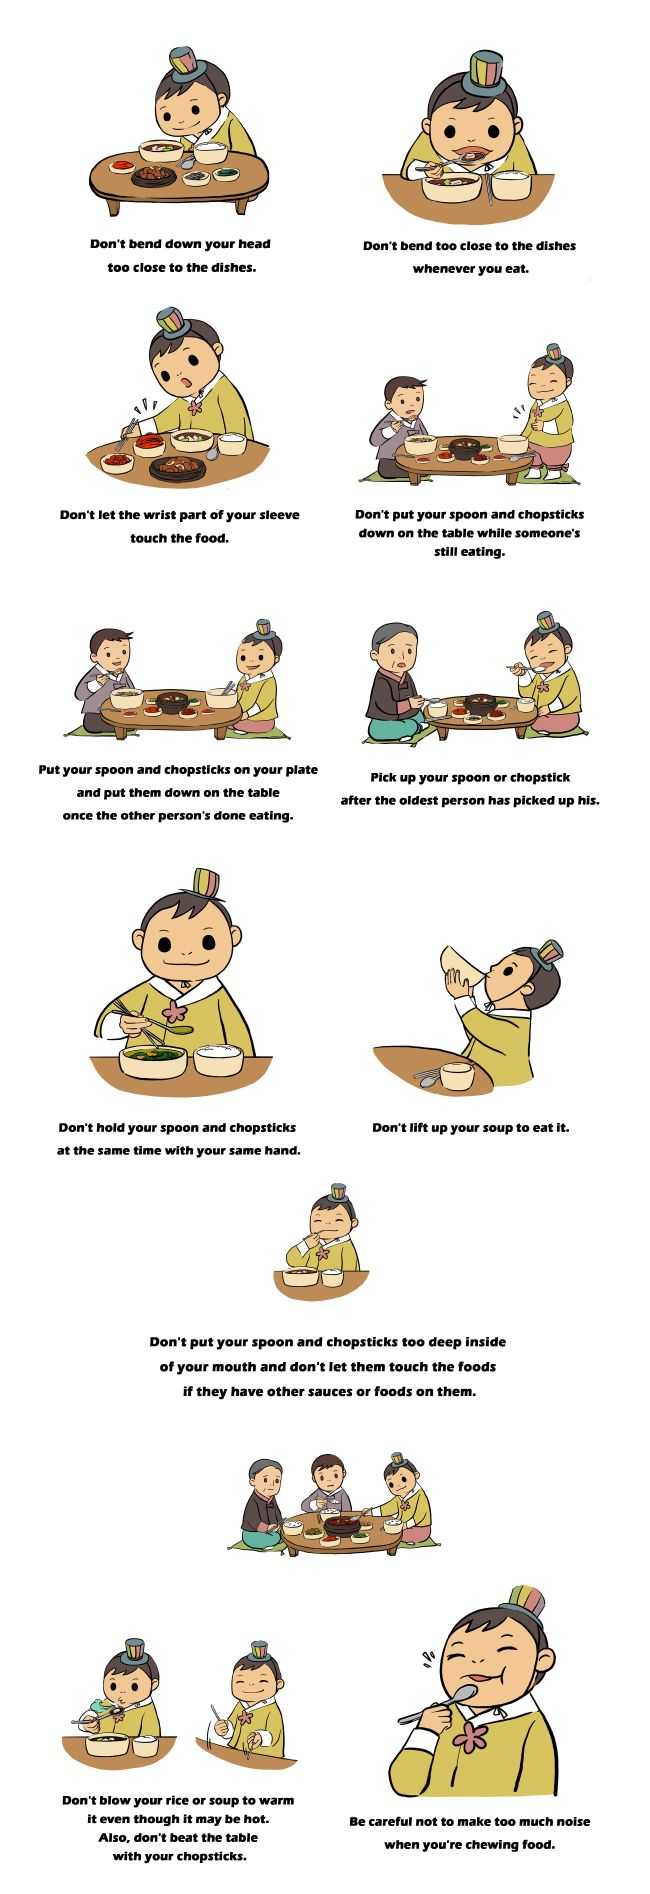 12 Korean table manners to follow - I violated most of these, I think.  Oh, well!